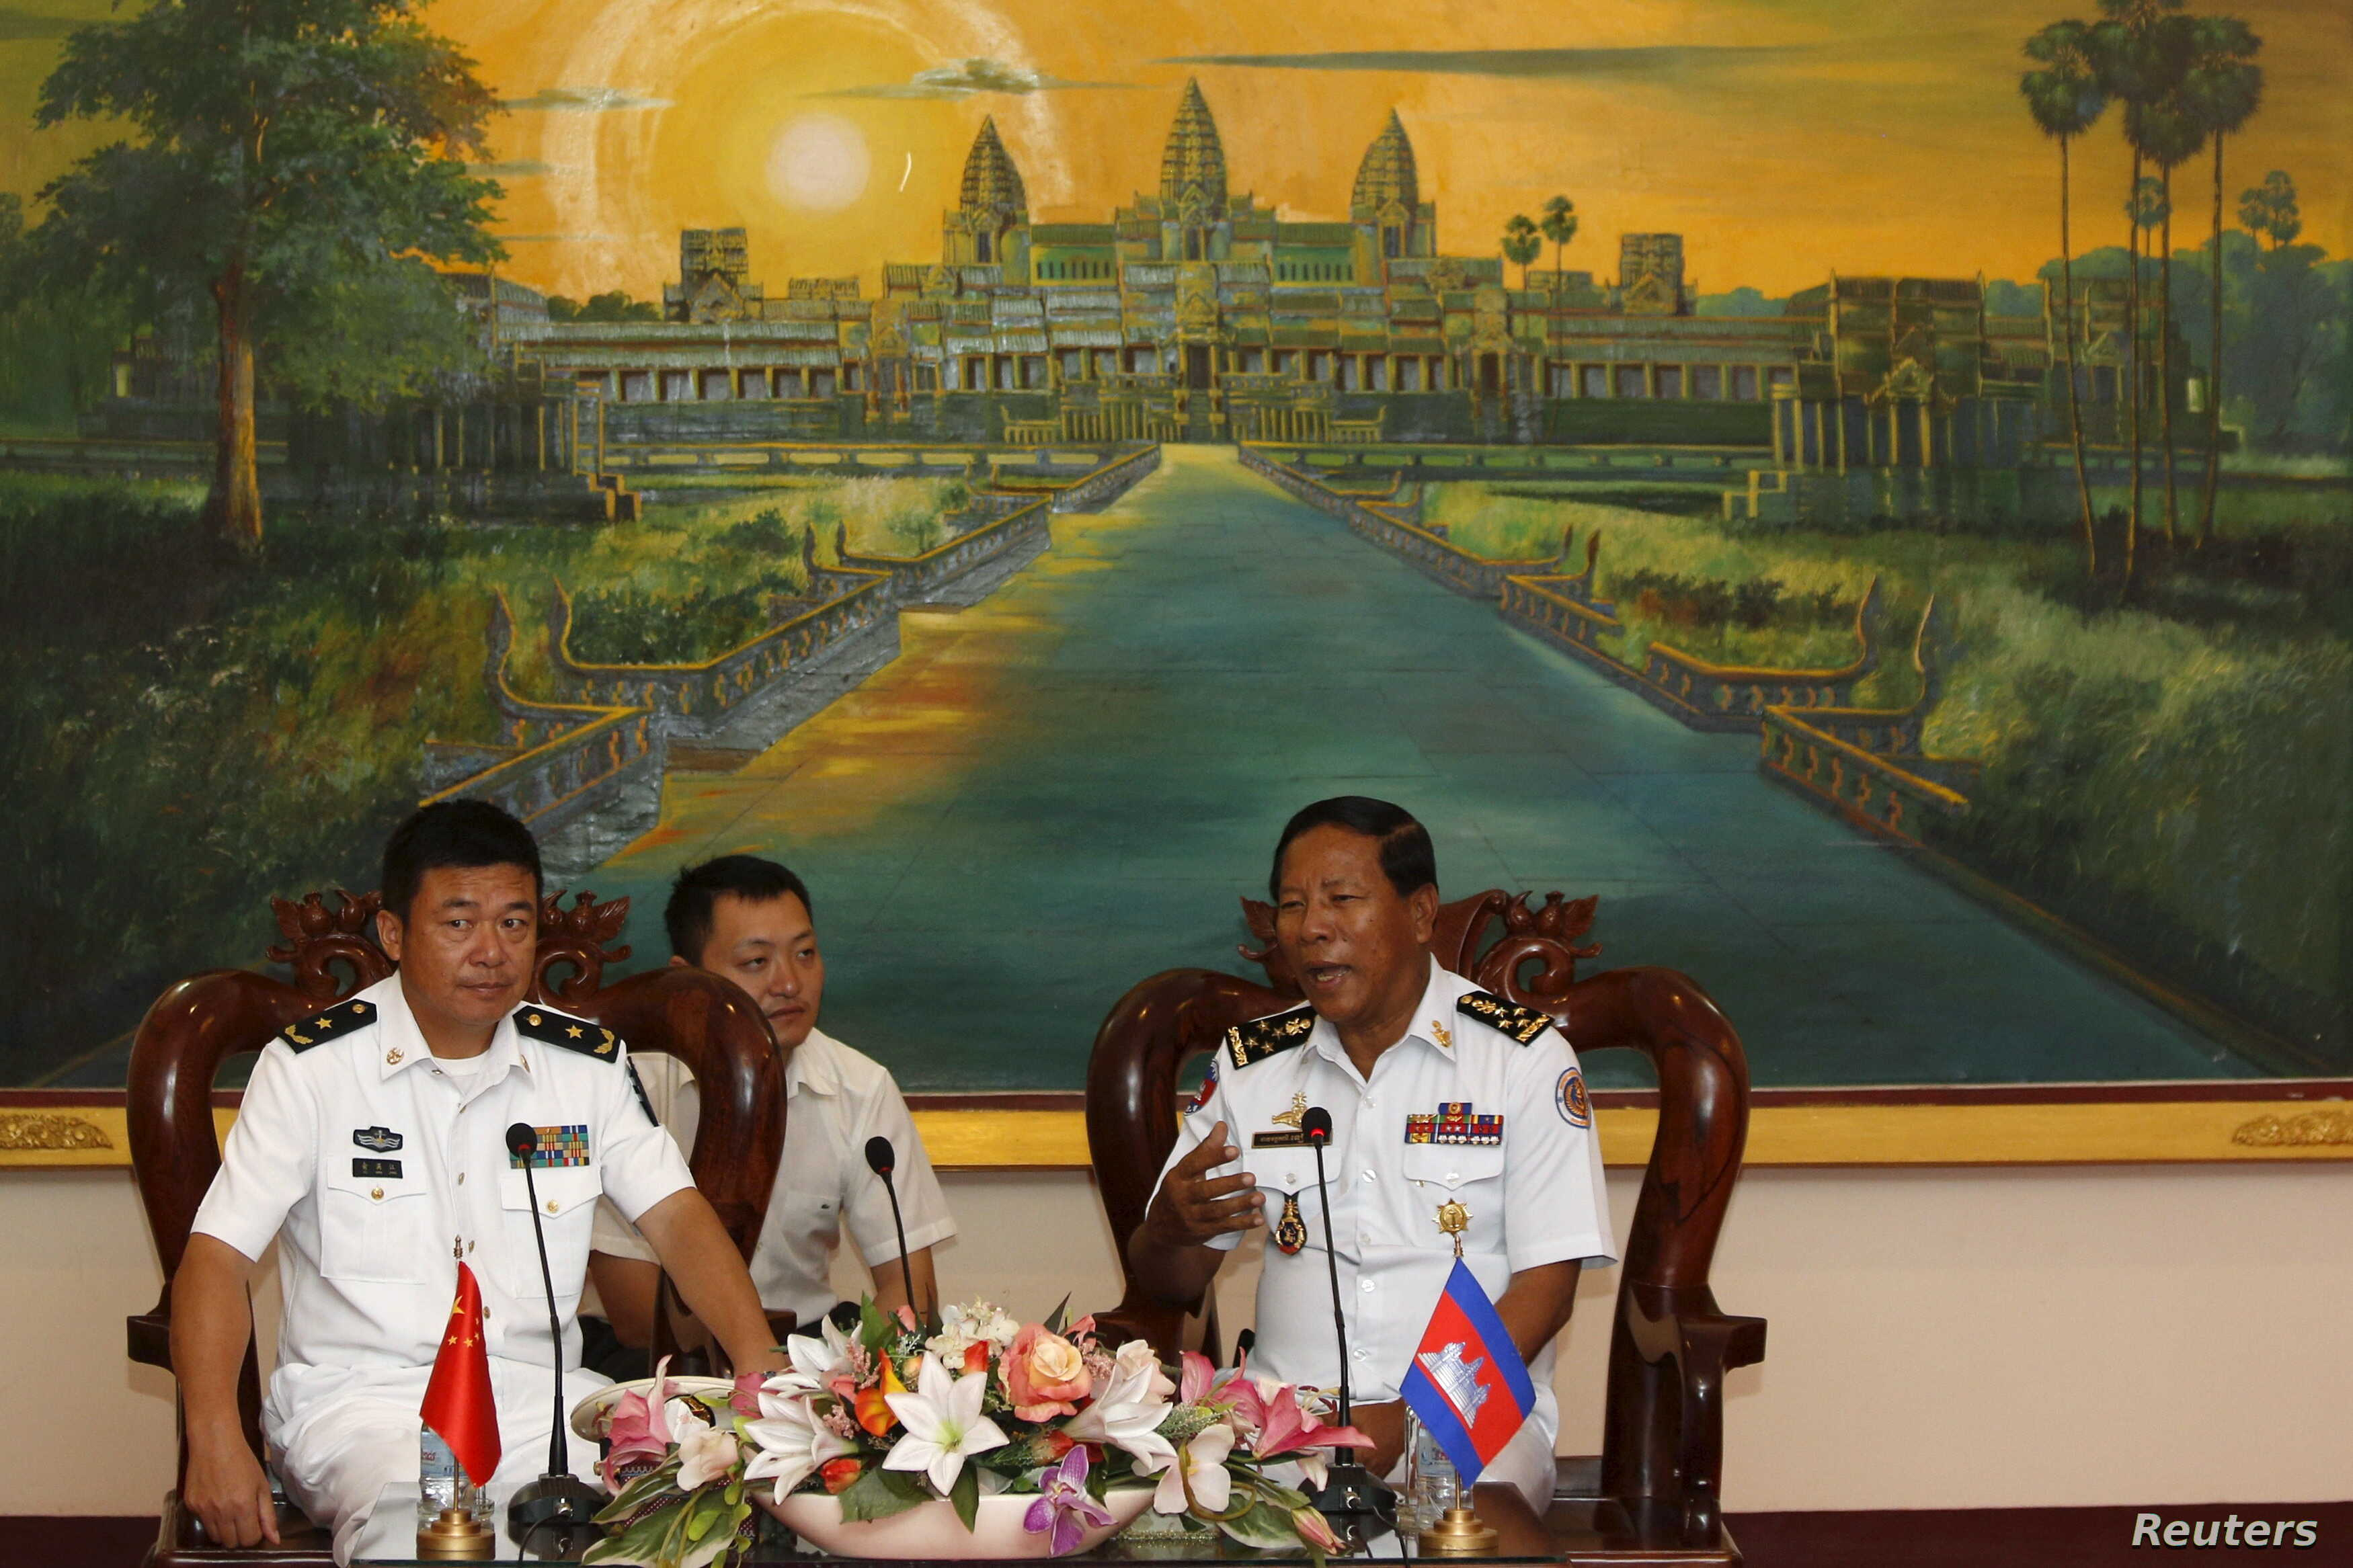 Cambodia Requests 2 Warships From China | Voice of America